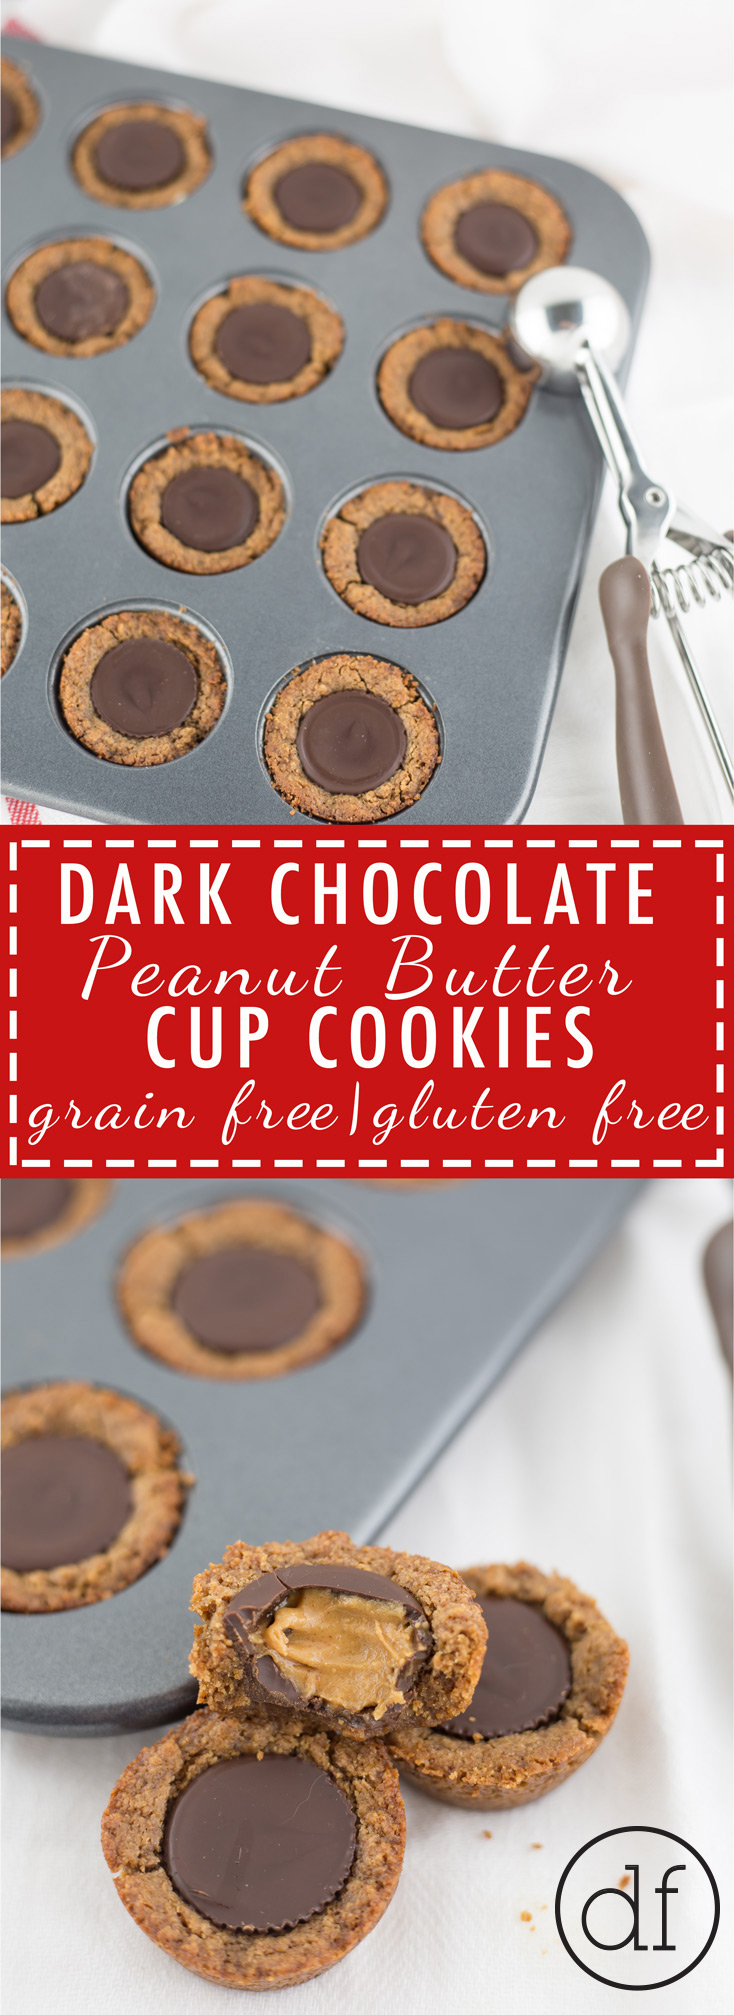 Peanut Butter Cup Cookies, Grain Free, Gluten Free, Healthy, Health Foods, Clean Eats, Almond Butter, Christmas Cookies, Holiday Cookies